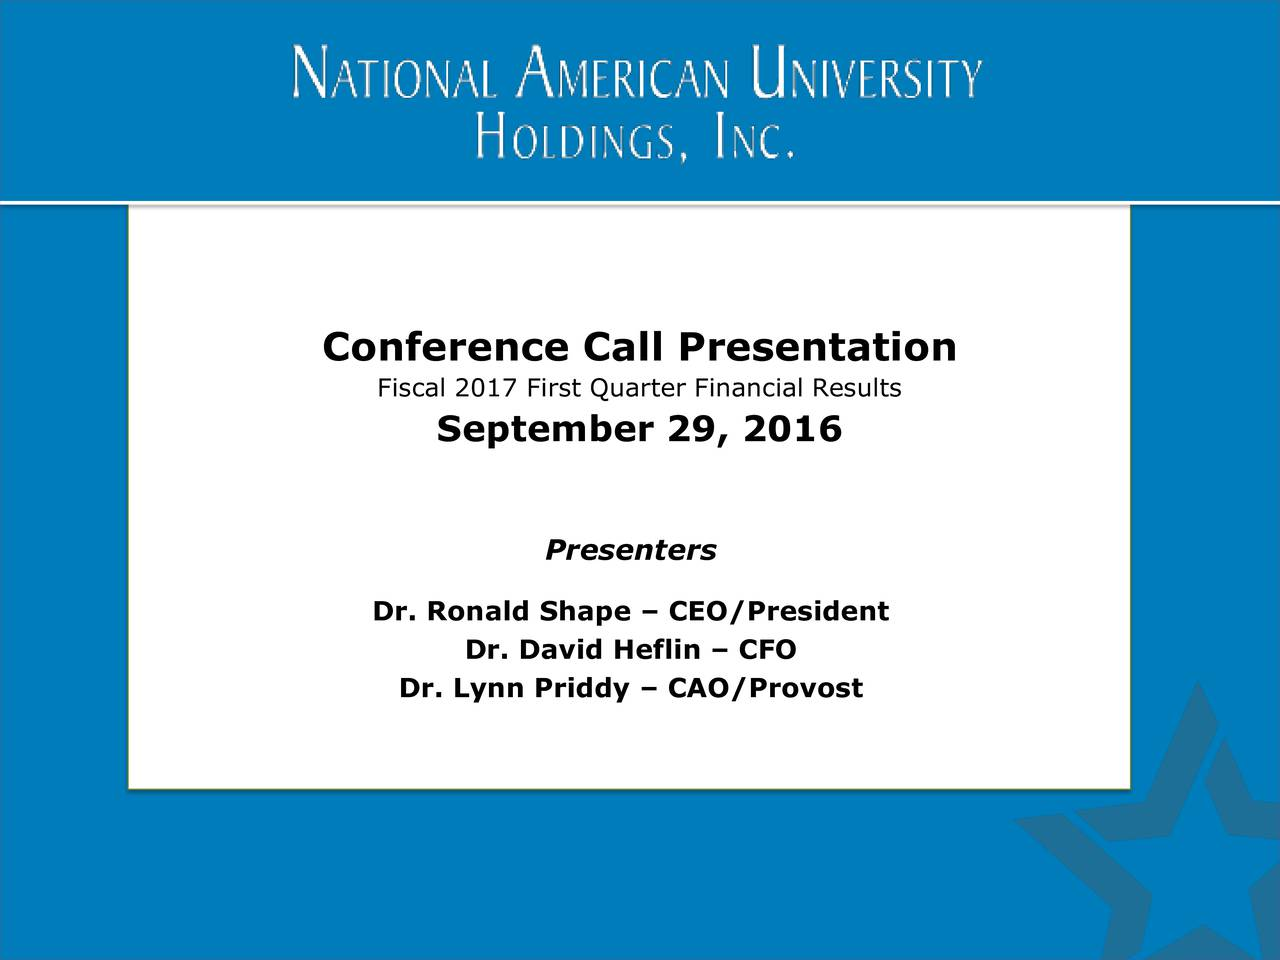 Conference Call Presentation Fiscal 2017 First Quarter Financial Results September 29, 2016 Presenters Dr. Ronald Shape  CEO/President Dr. David Heflin  CFO Dr. Lynn Priddy  CAO/Provost